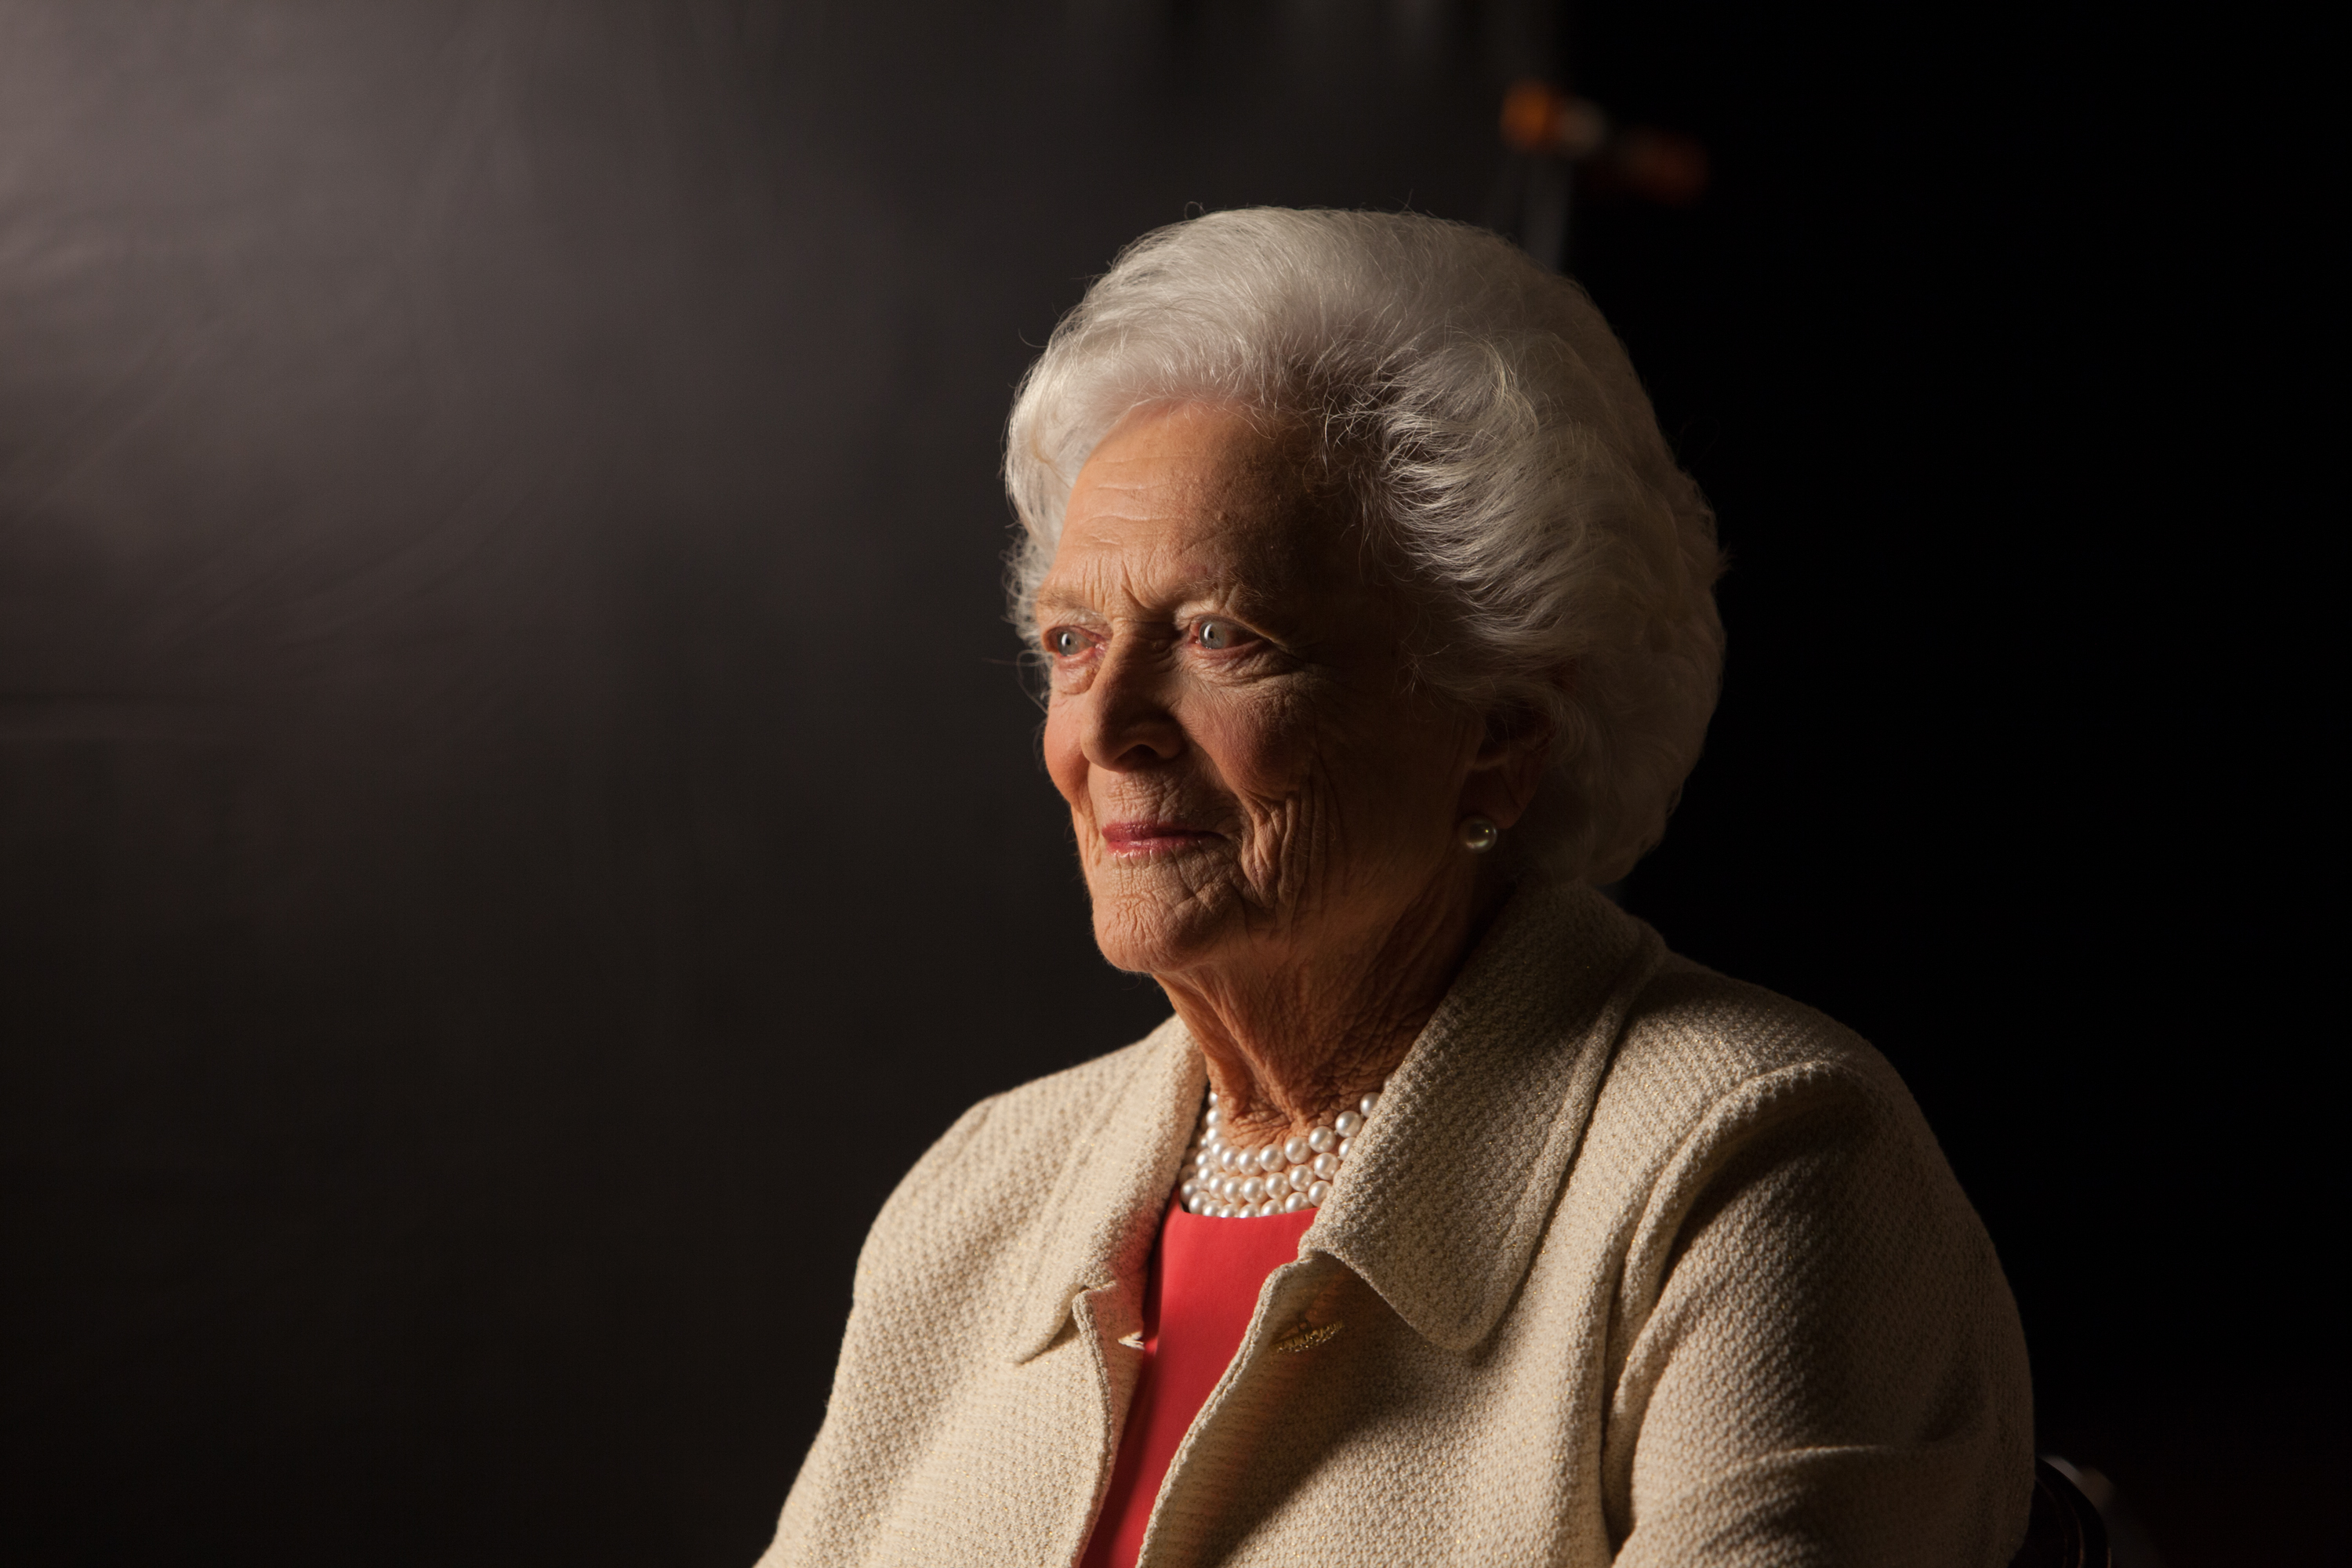 Former First Lady Barbara Bush is interviewed for 'The Presidents' Gatekeepers' project about the White House Chiefs of Staff at the Bush Library, Oct. 24, 2011 in College Station, Texas.